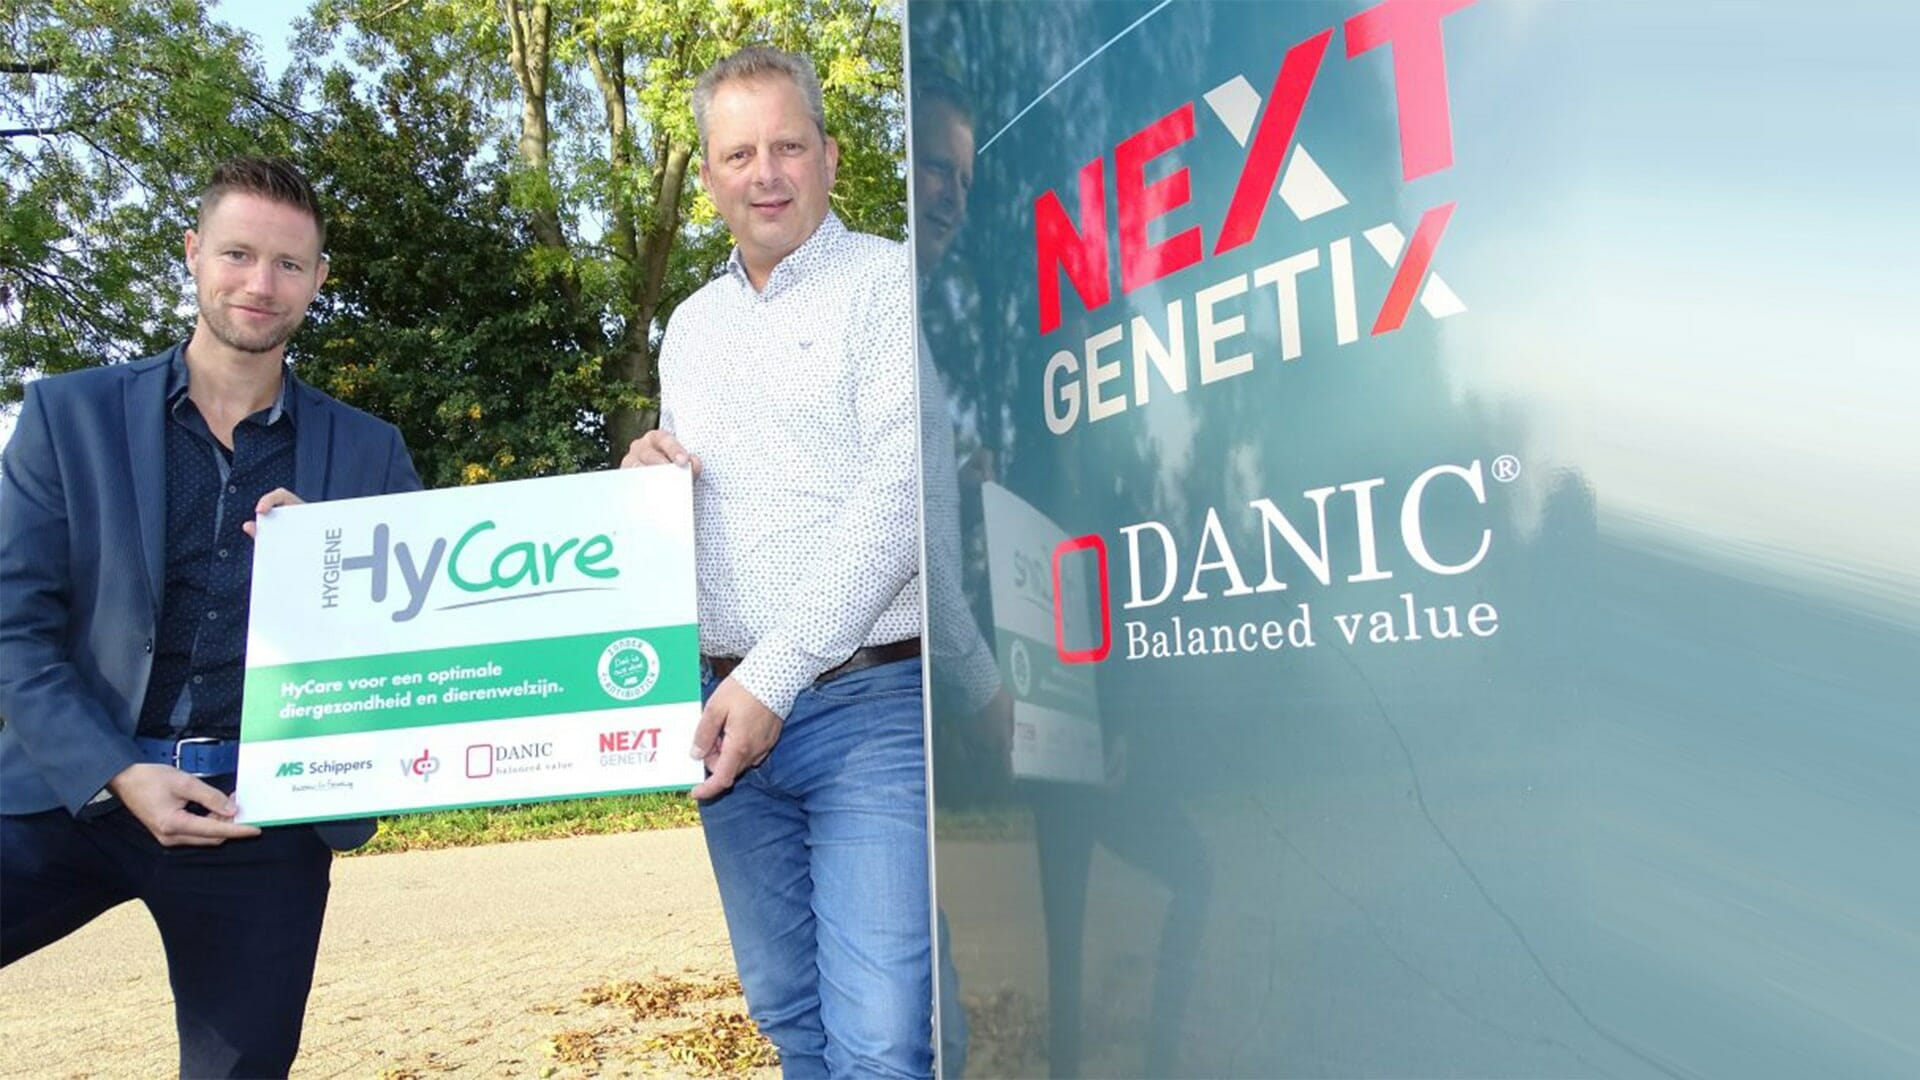 Next Genetix er de første til at implementere HyCare i svineproduktion